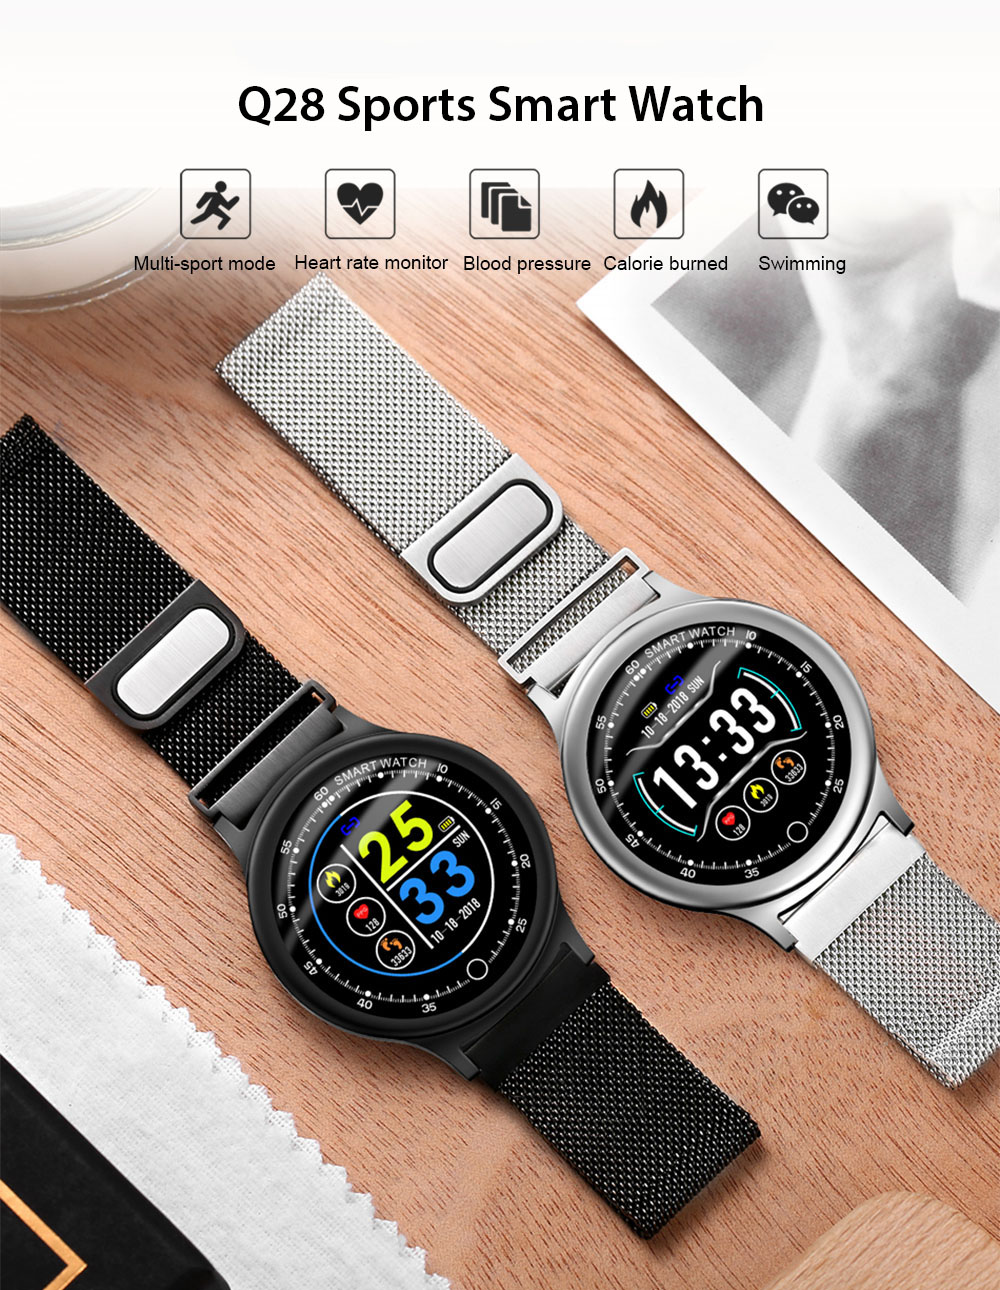 Q28 Sports Smart Watch 1.34 inch Color Screen IP68 Waterproof Heart Rate / Sleep Monitor - Black Leather Band